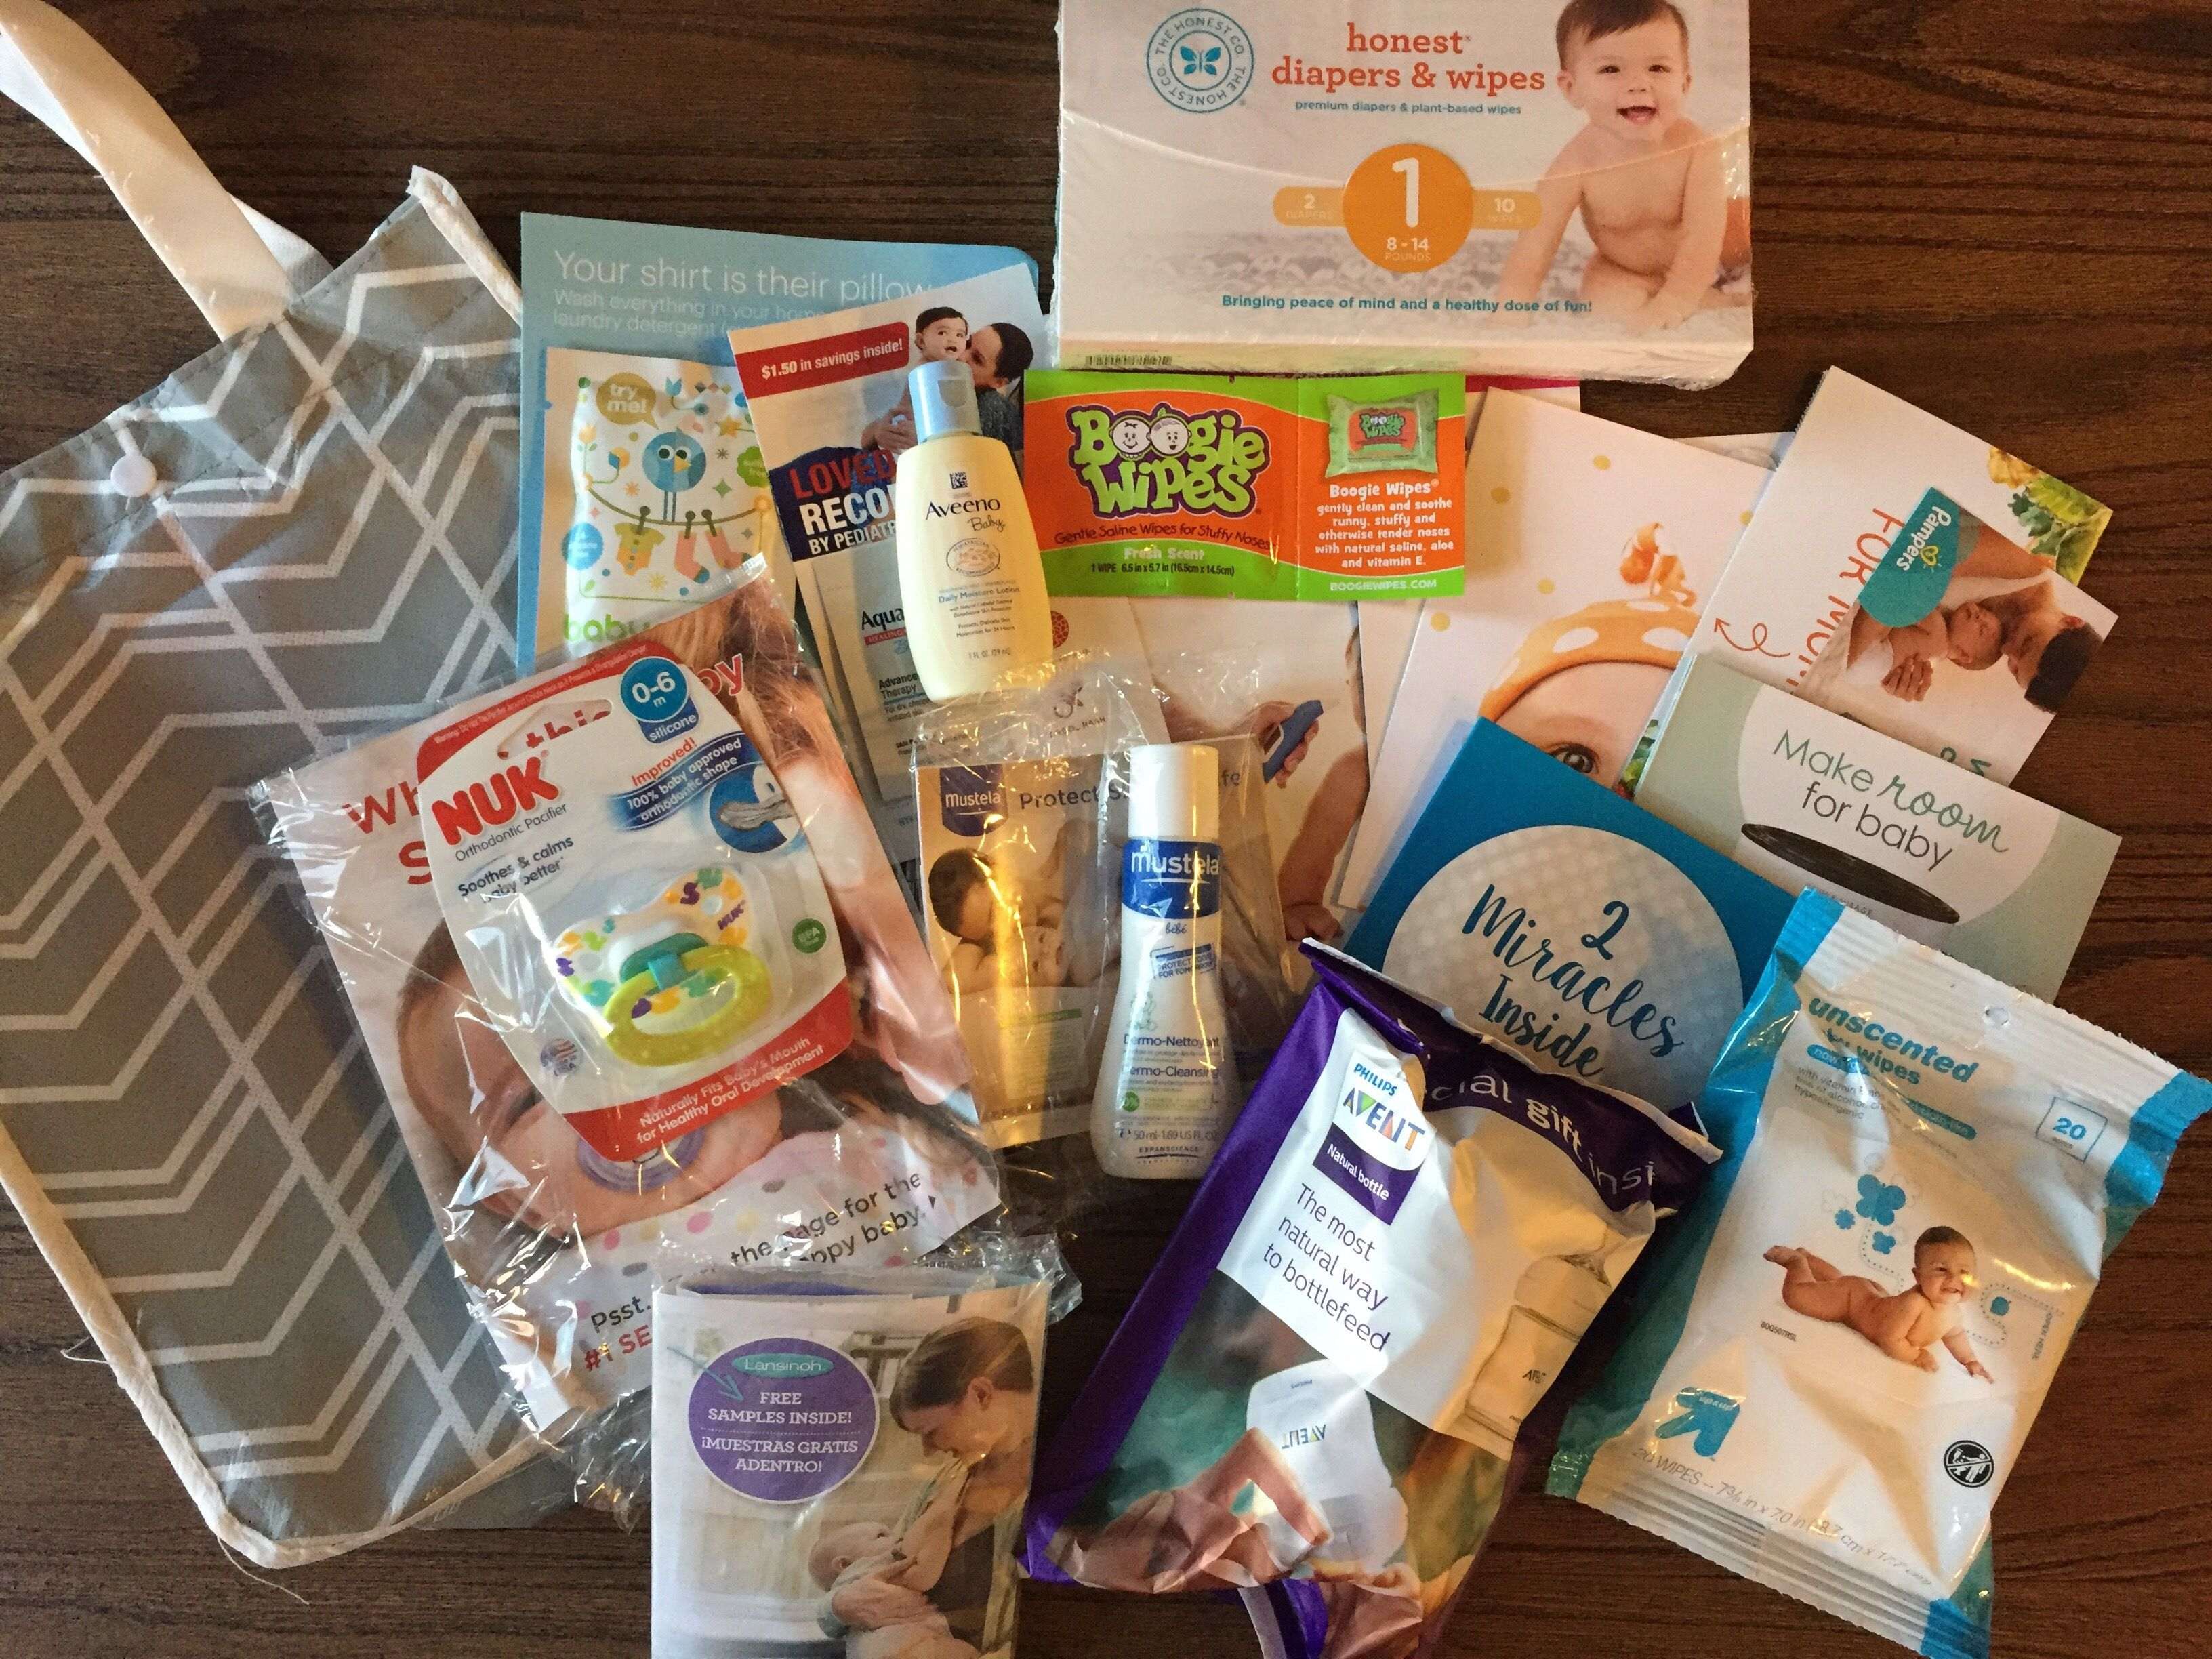 Target Registry Complimentary Gift Review Free Baby Gifts Free Baby Stuff Honest Diapers